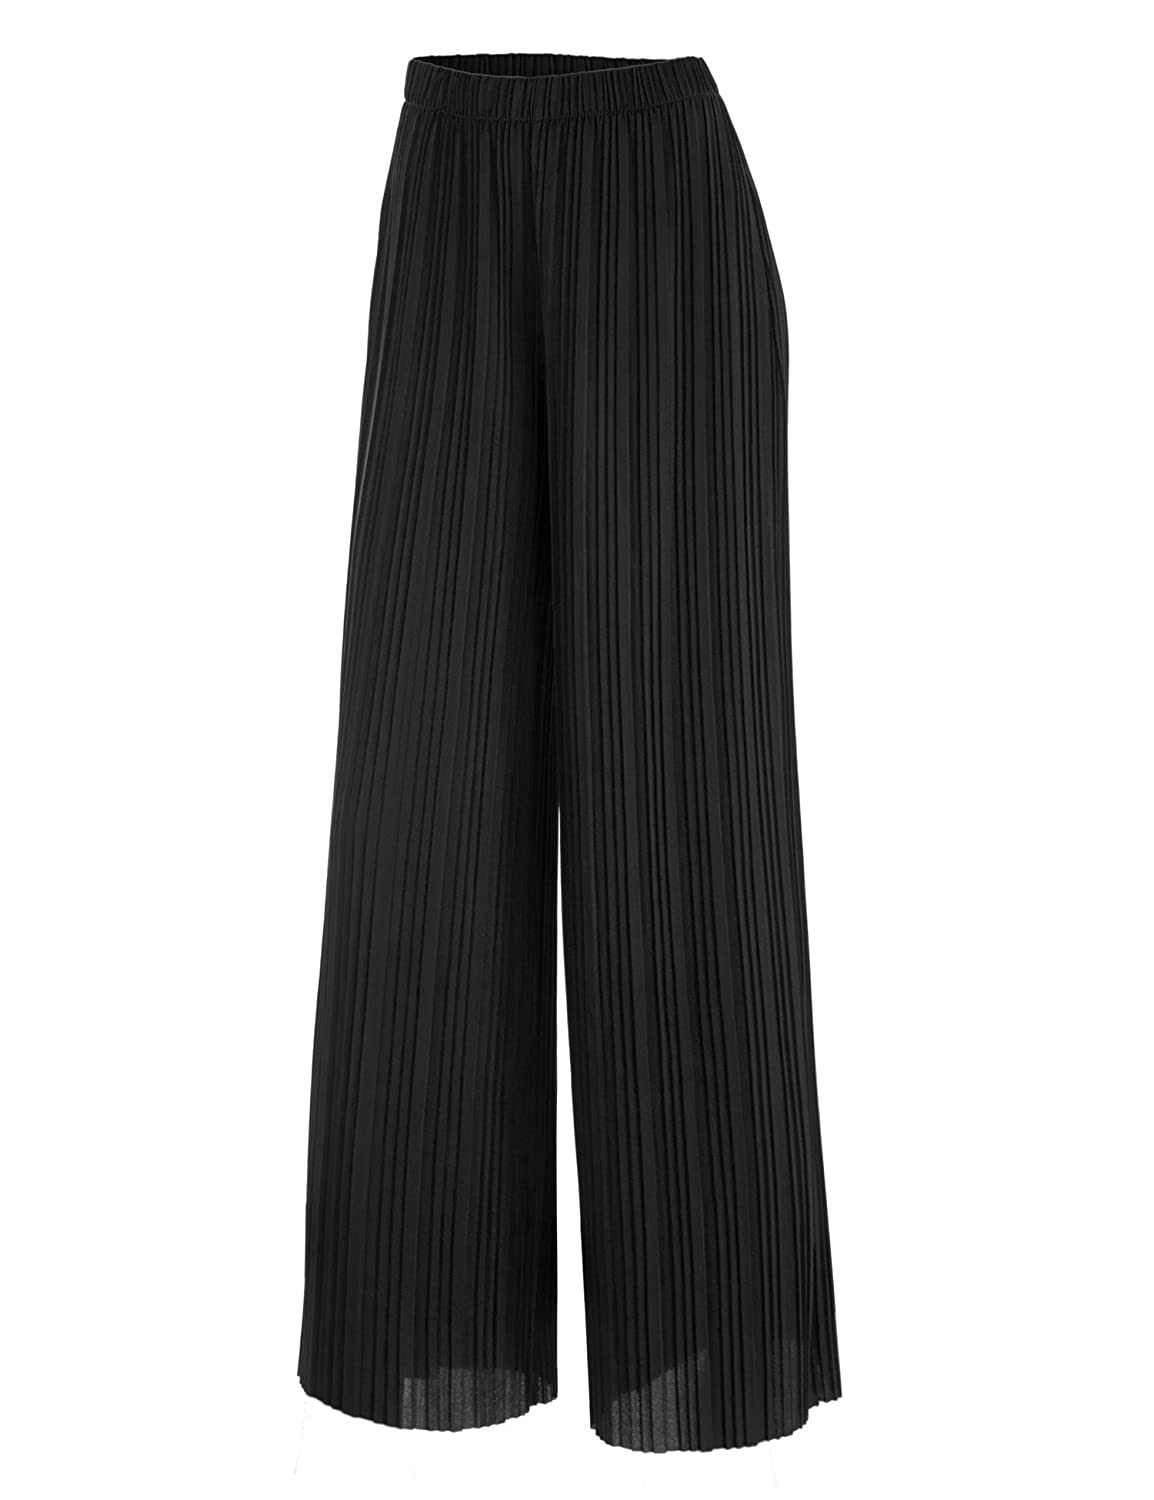 507984cb240ff Made By Johnny Women's Premium Pleated Maxi Wide Leg Palazzo Pants Gaucho- High  Waist with Drawstring at Amazon Women's Clothing store: